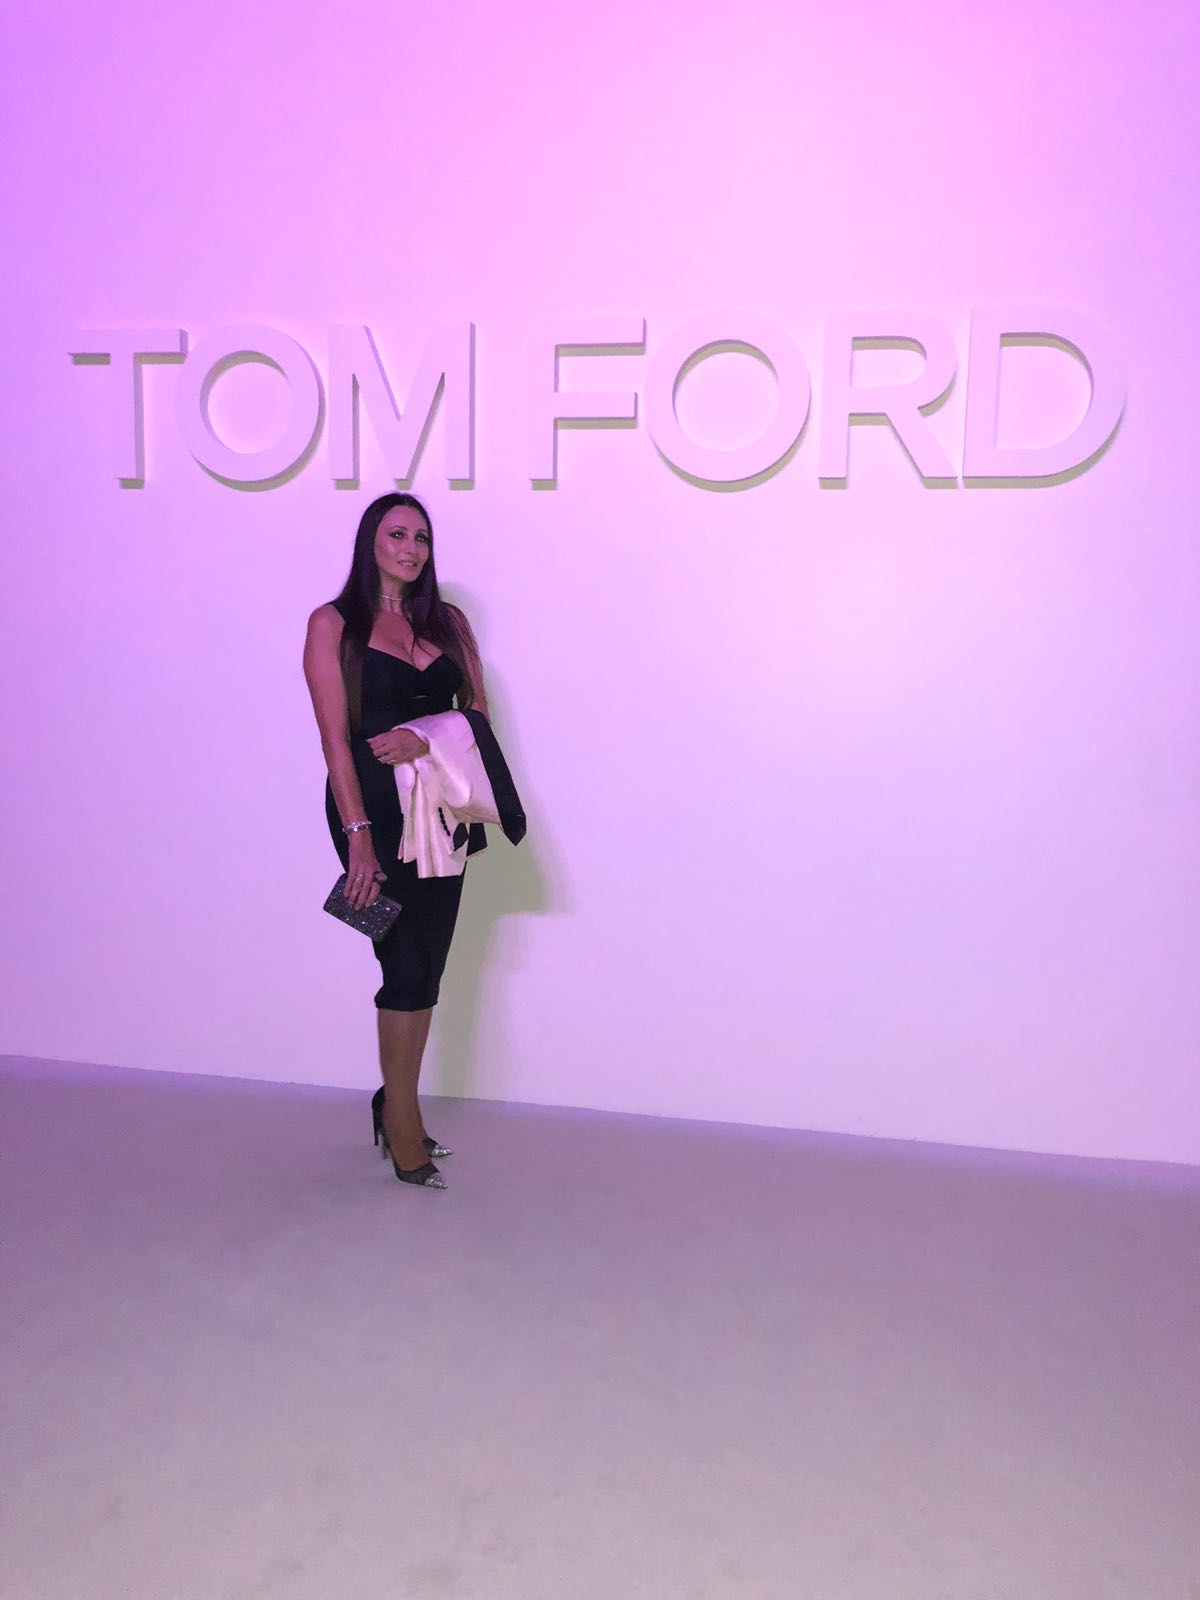 Tom Ford seduces in New York too: Milena Giordano's point of view